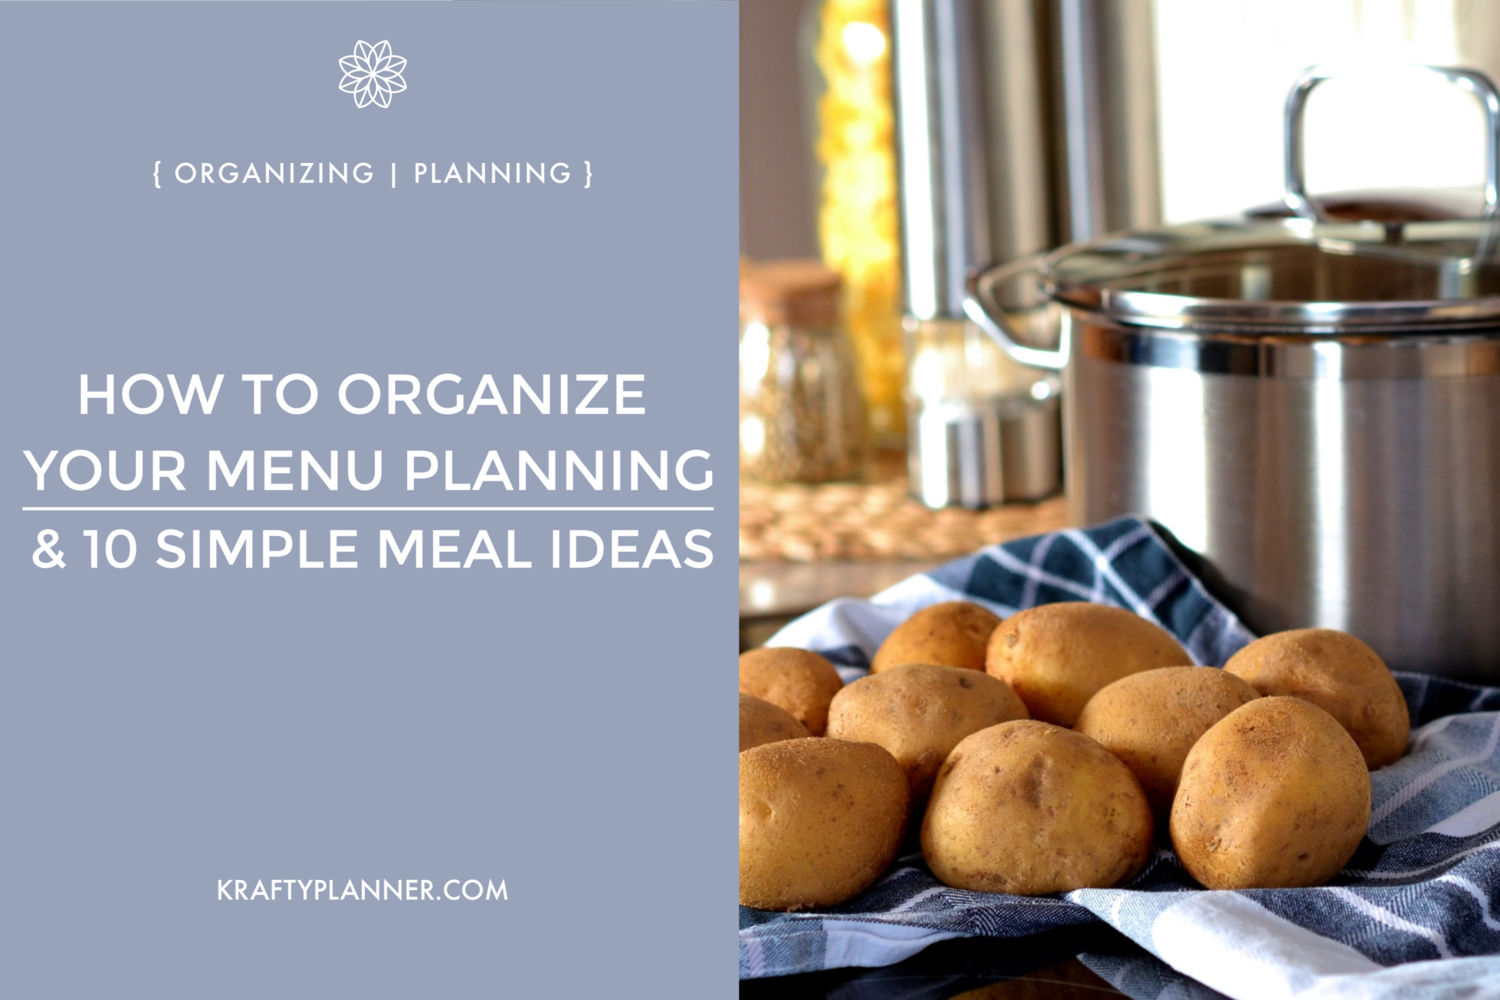 How To Organize Your Menu Planning 10 Simple Meal Ideas Main Image.png